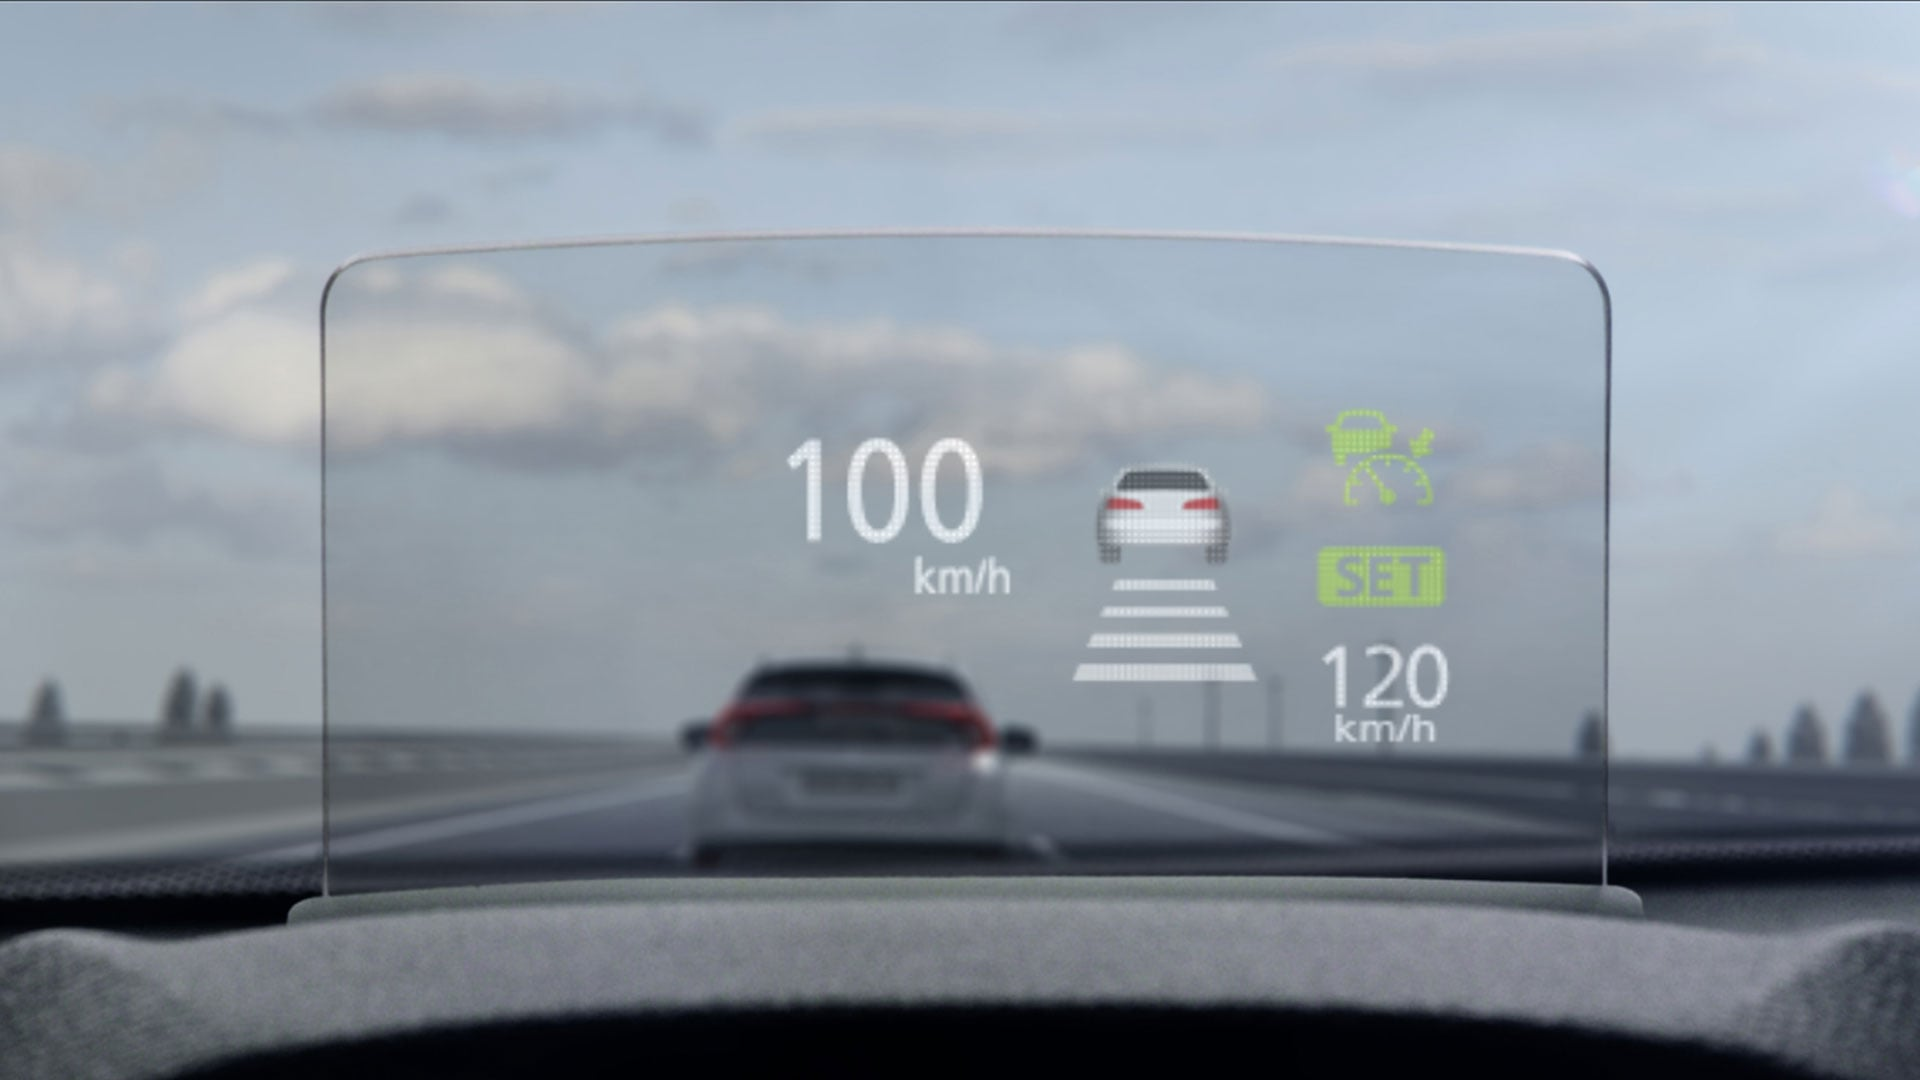 Eclipse Cross heads-up display